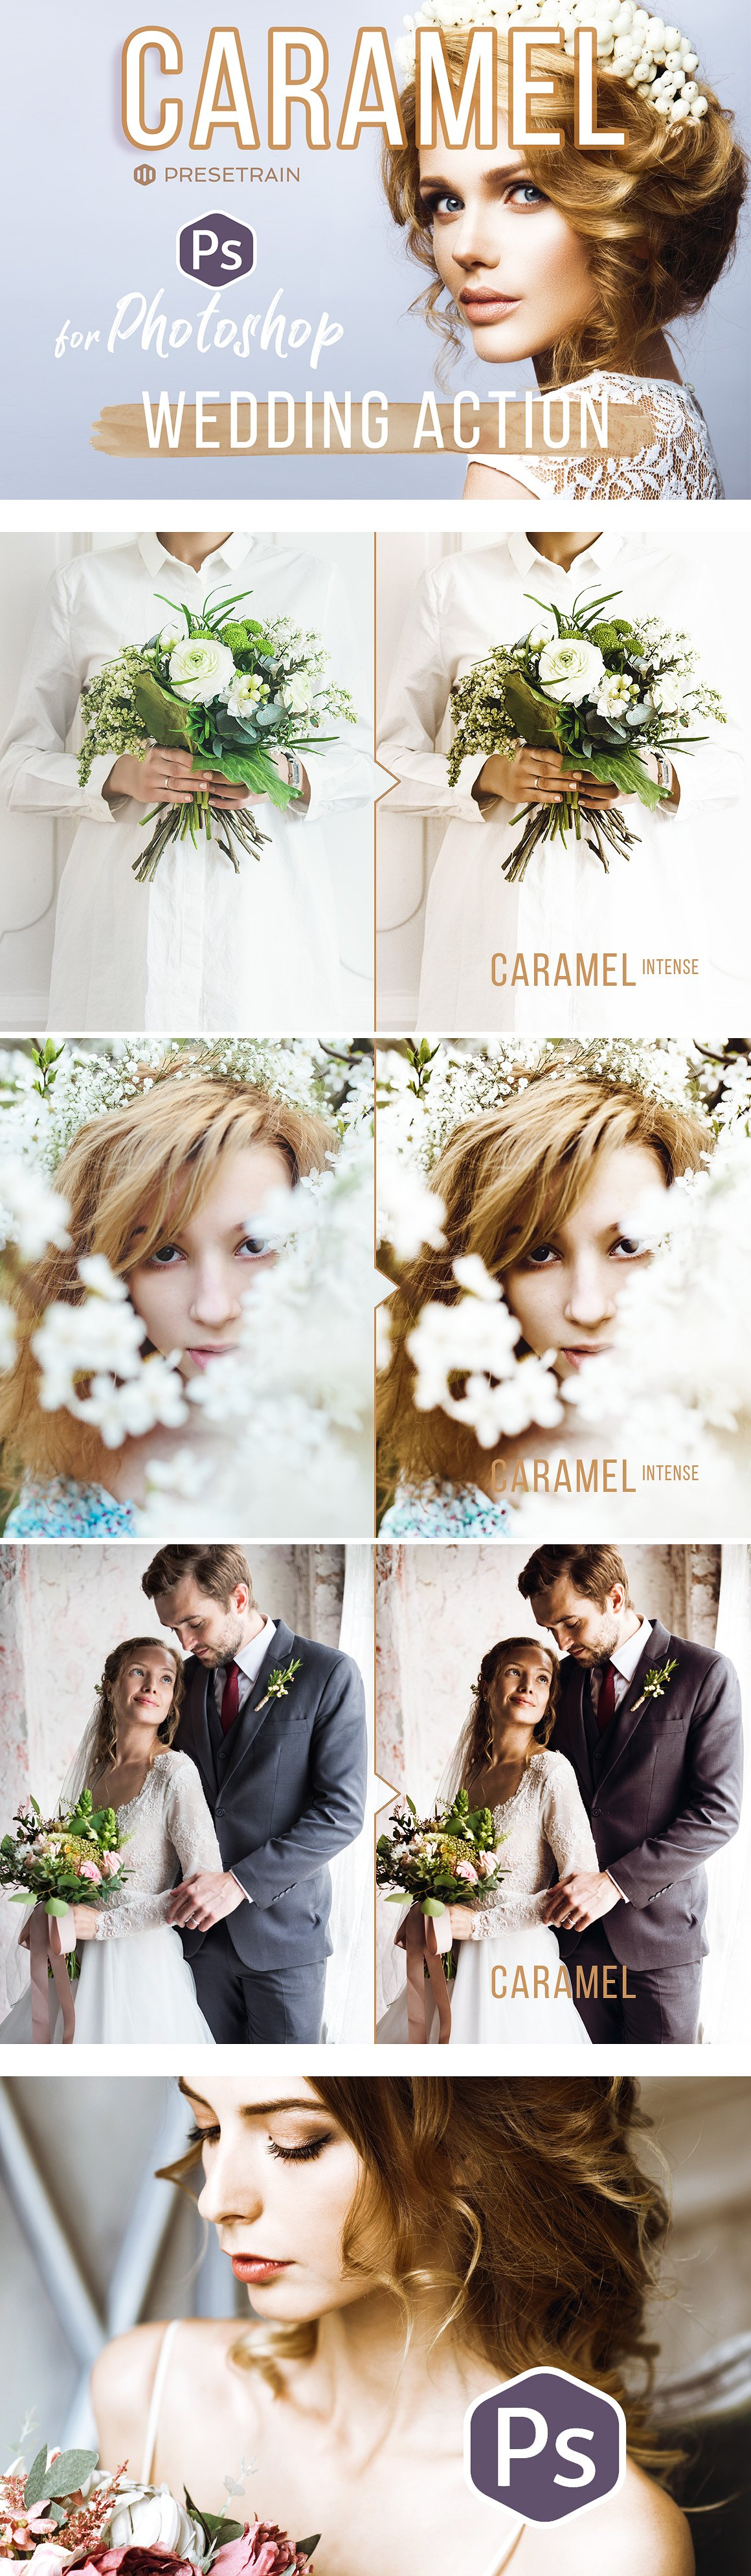 Sepia Wedding Photoshop Actions by Presetrain Co.